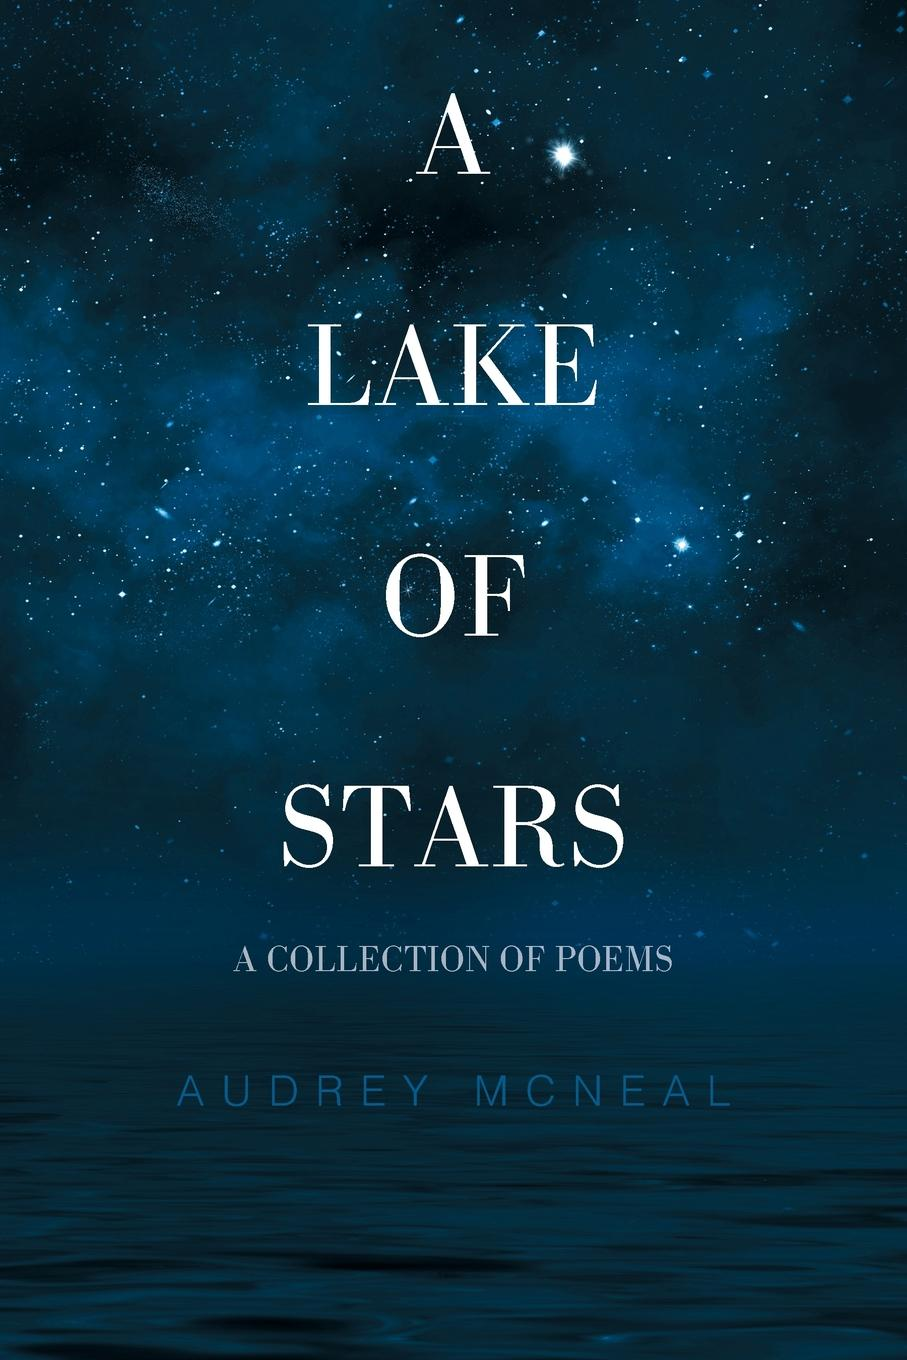 Audrey McNeal A Lake of Stars. A Collection of Poems virginia hamilton adair ants on the melon a collection of poems